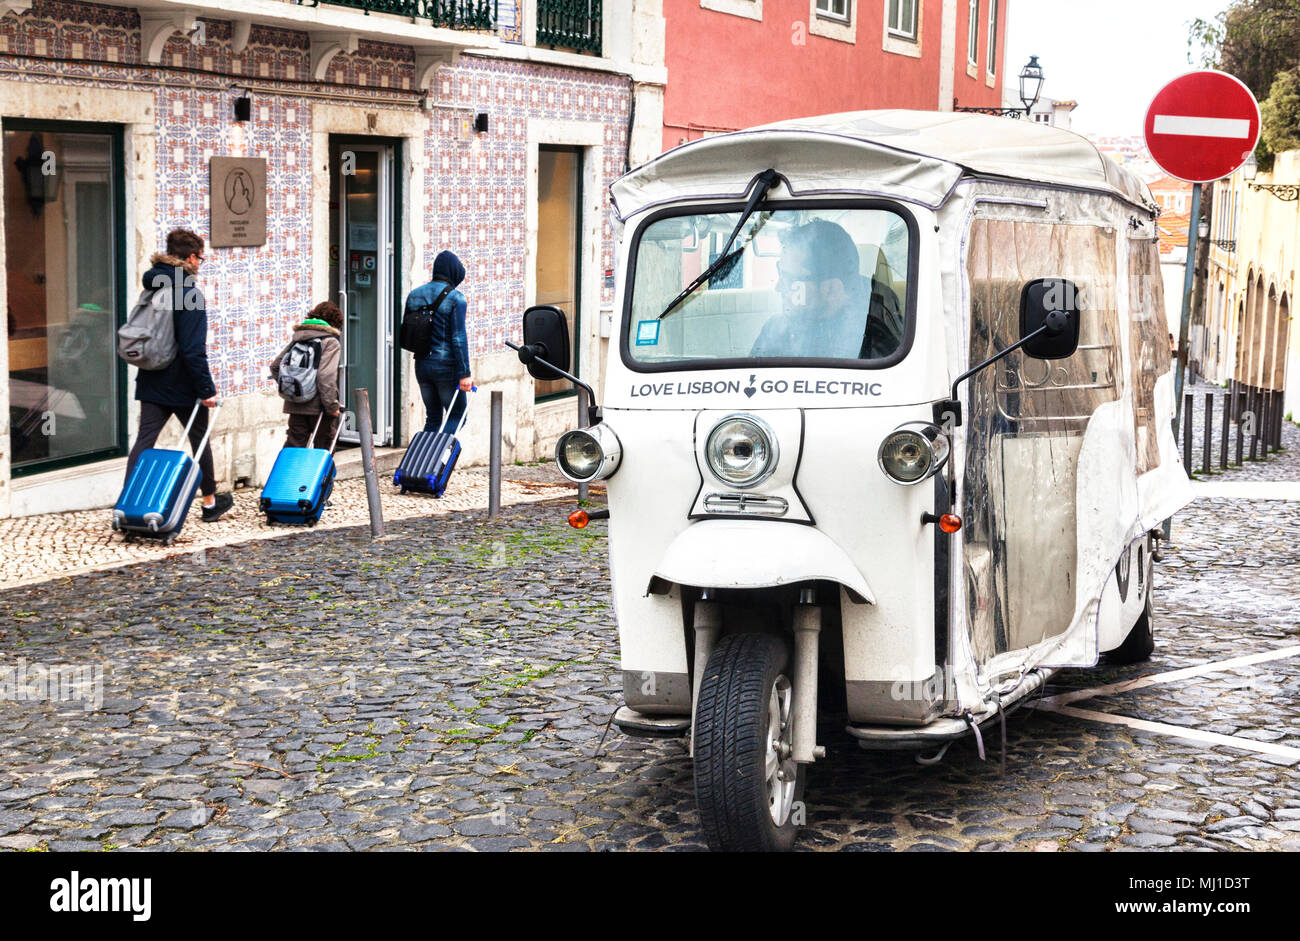 1 March 2018: Lisbon, Portugal - Electric tuk tuk in Lisbon's Old Town, with the slogan Love Lisbon Go Electric. - Stock Image